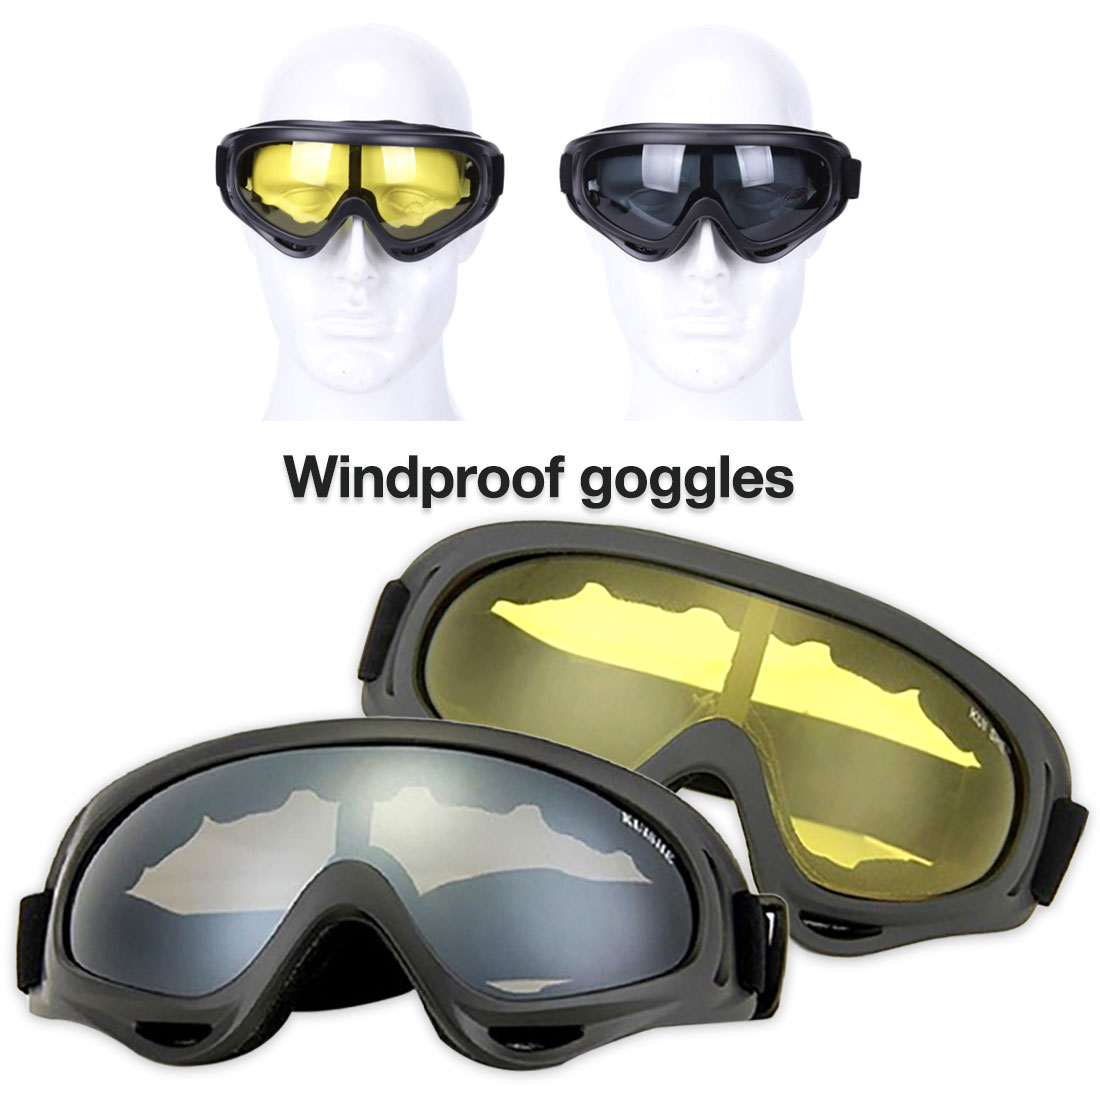 2019 Airsoft Wind Dust Tactical Goggle Glasses Outdoor Sports Cycling Unisex Eyeglasses Military Army Protected Durable Eyewear